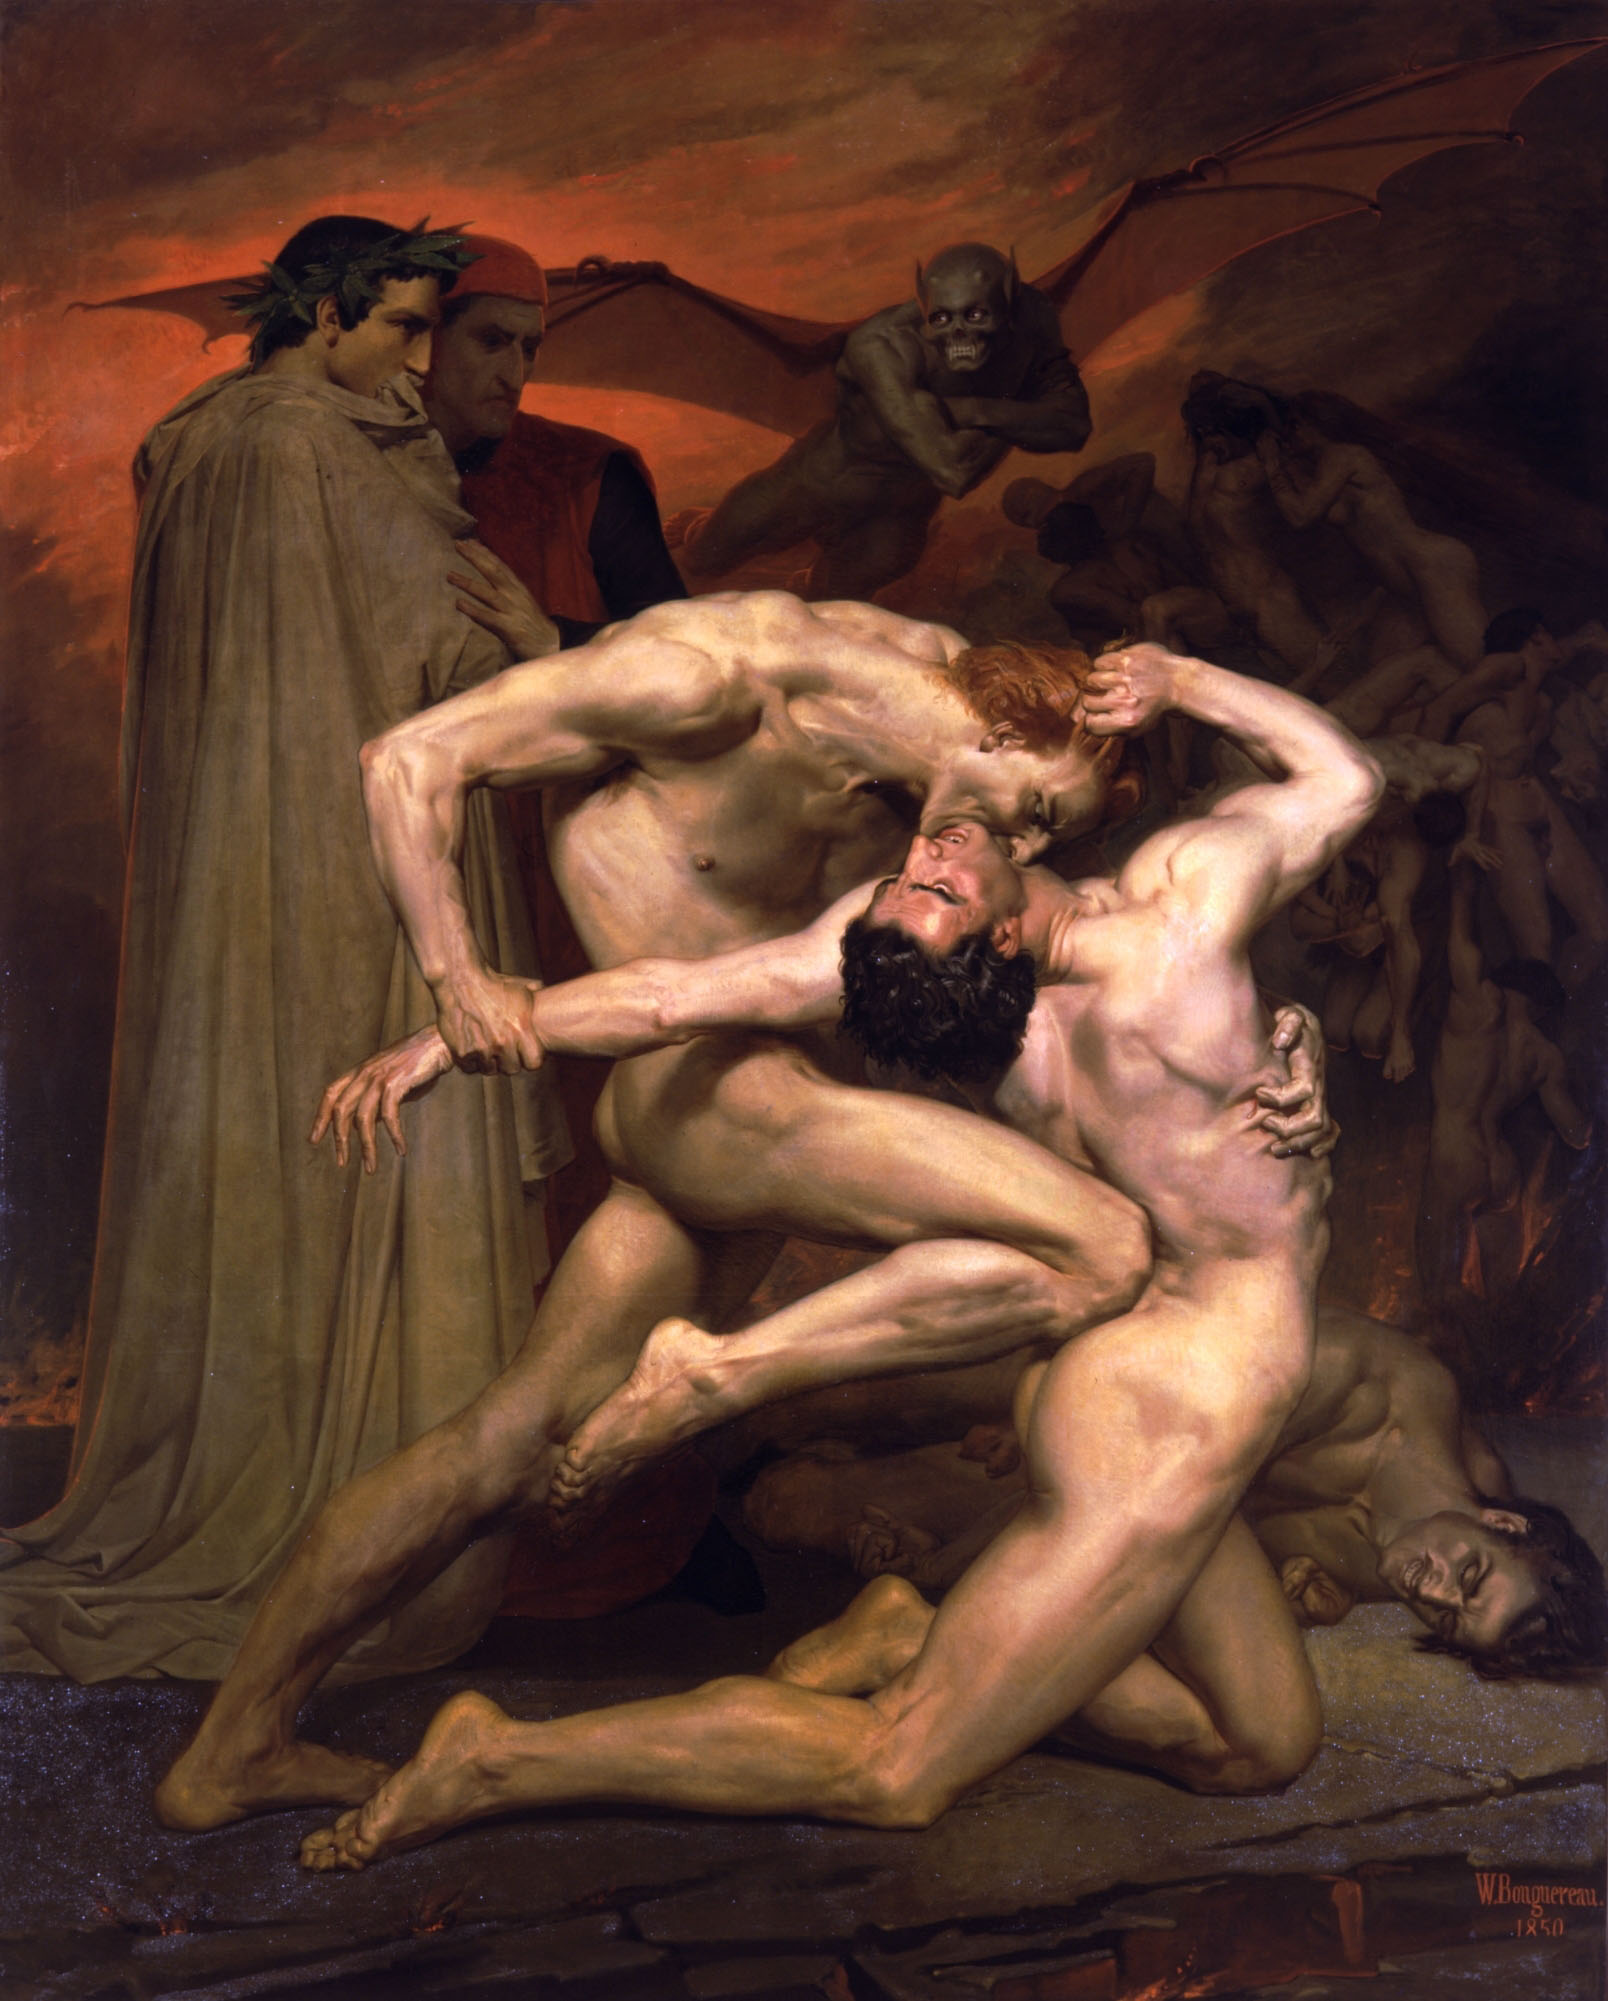 William Bouguereau (1825-1905)  Dante et Virgile au Enfers [Dante and Virgil in Hell]  Oil on canvas, 1850  110 5/8 x 88 1/2 inches (281 x 225 cm)  Private collection